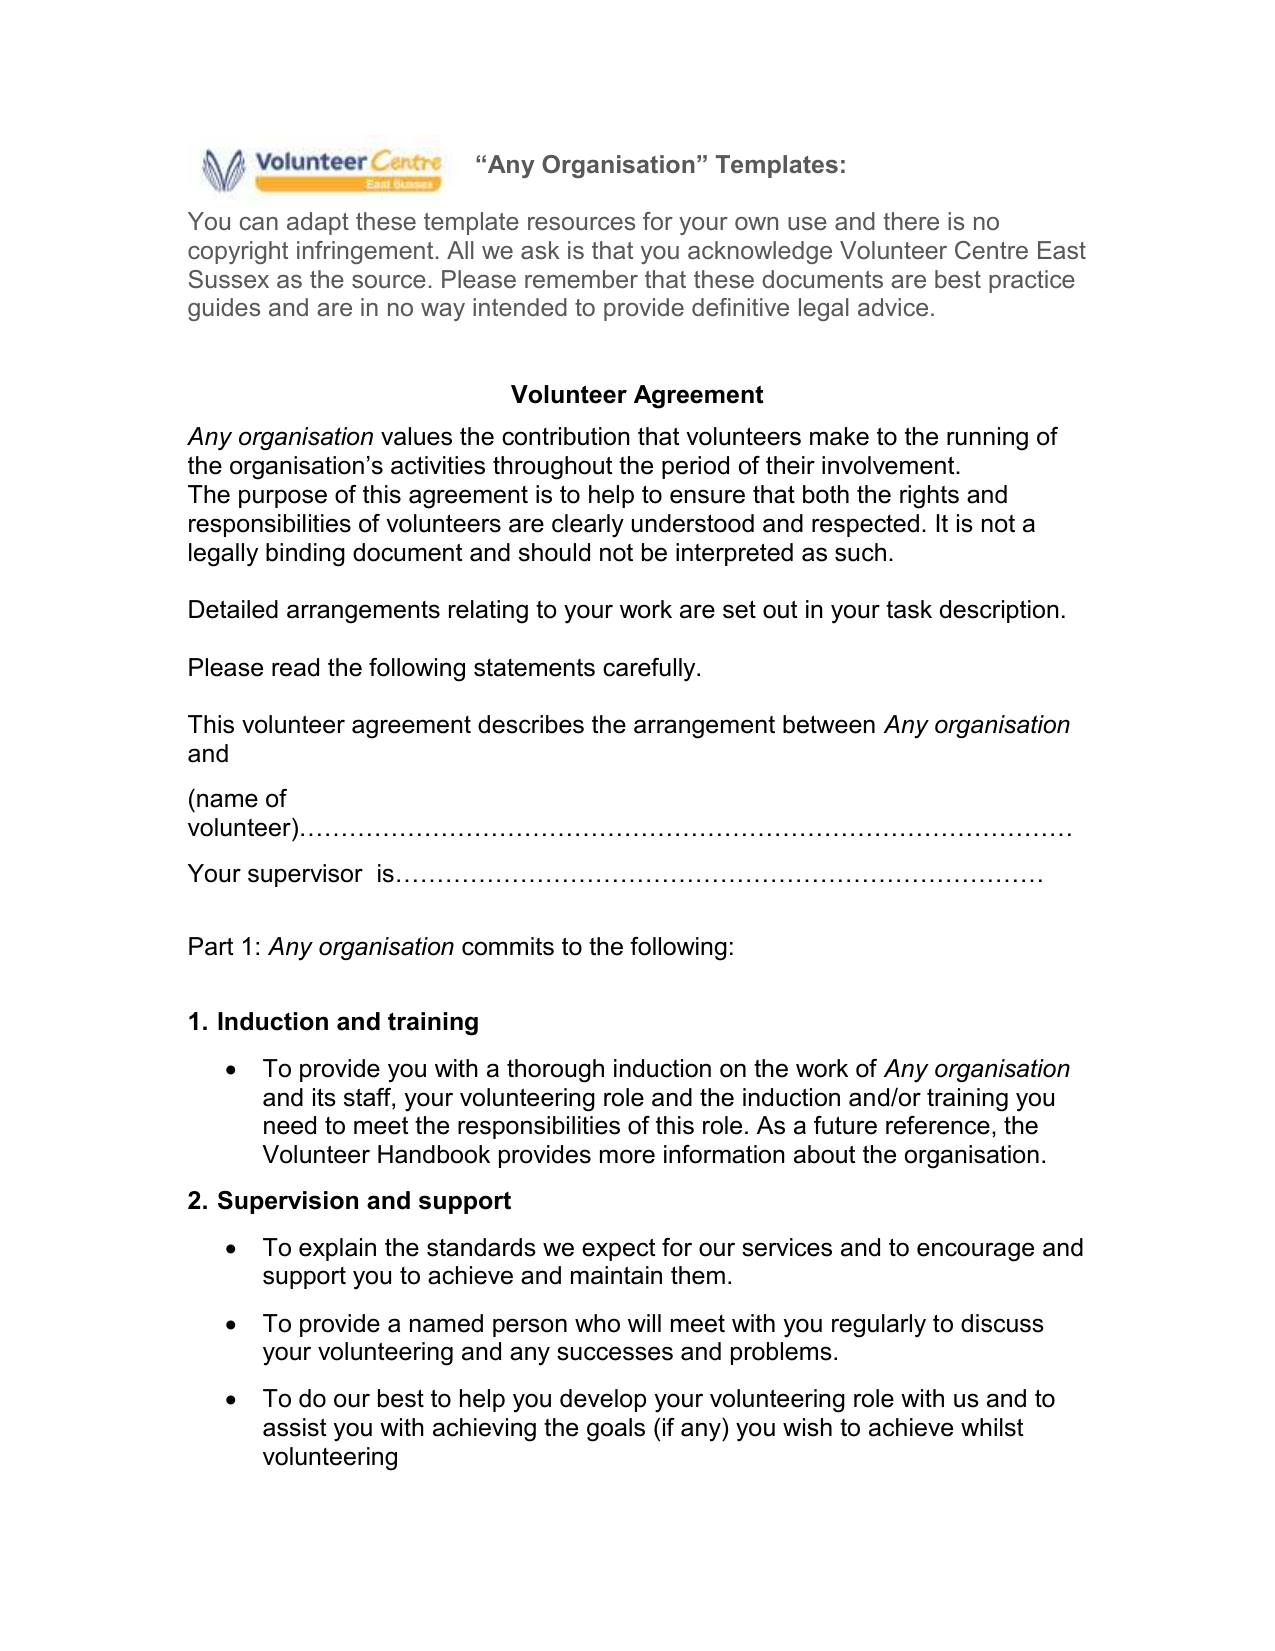 Volunteer Good Practice Agreement